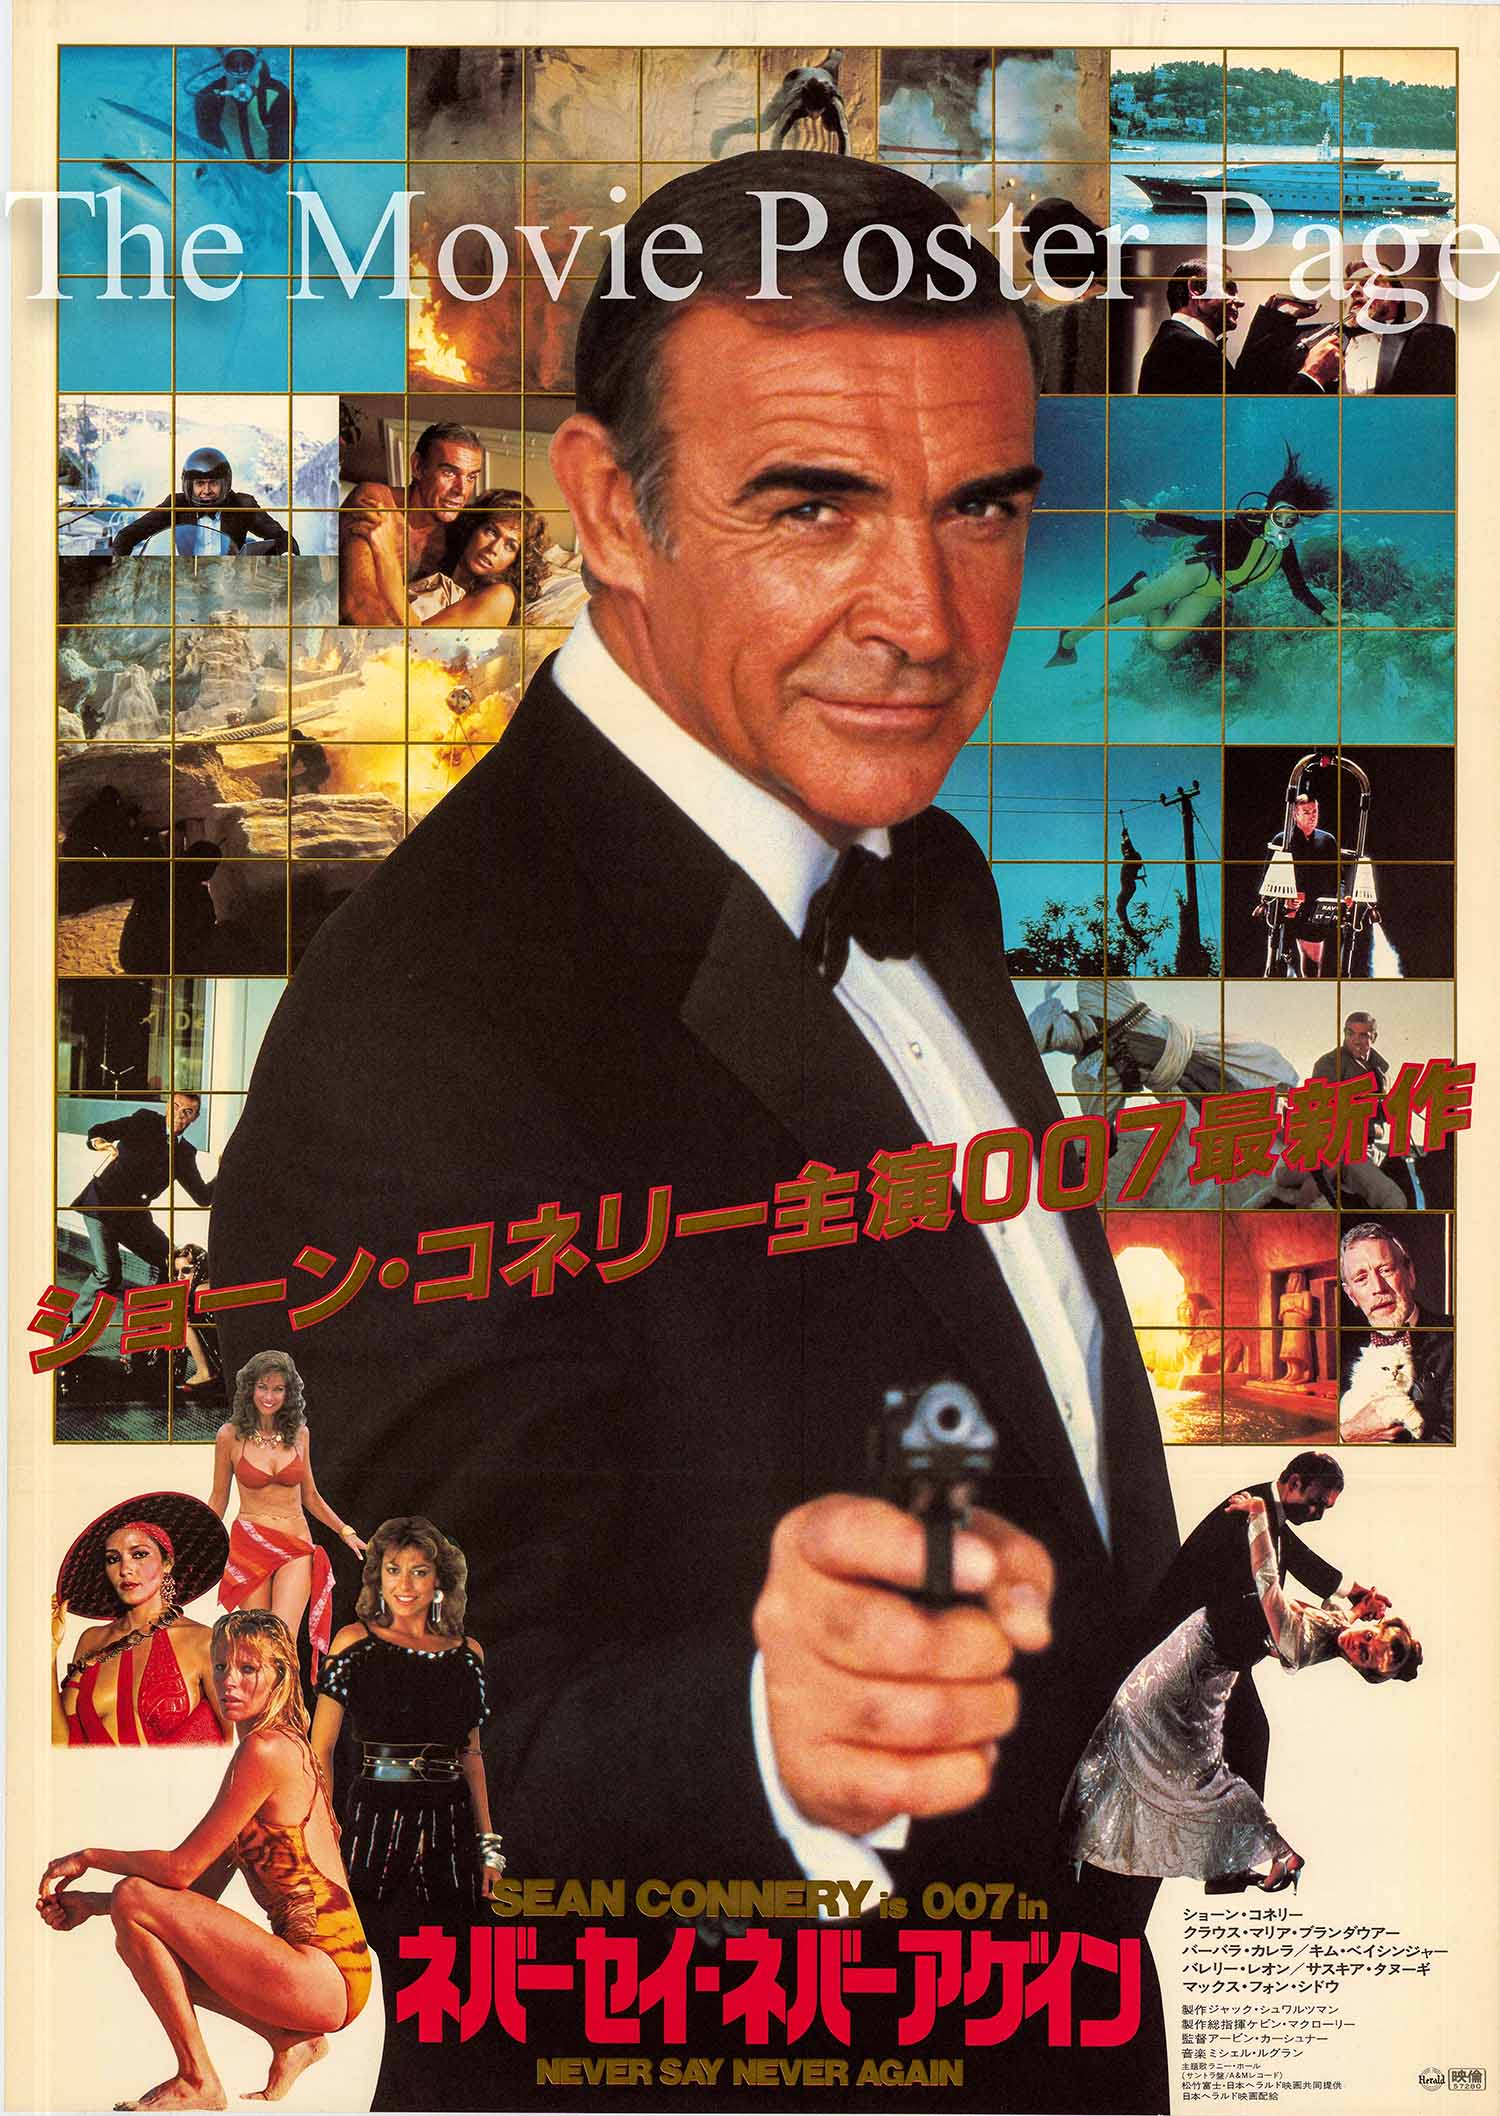 Pictured is a Japanese promotional poster for the 1983 Irvin Kershner film Never Say Never Again starring Sean Connery as James Bond.